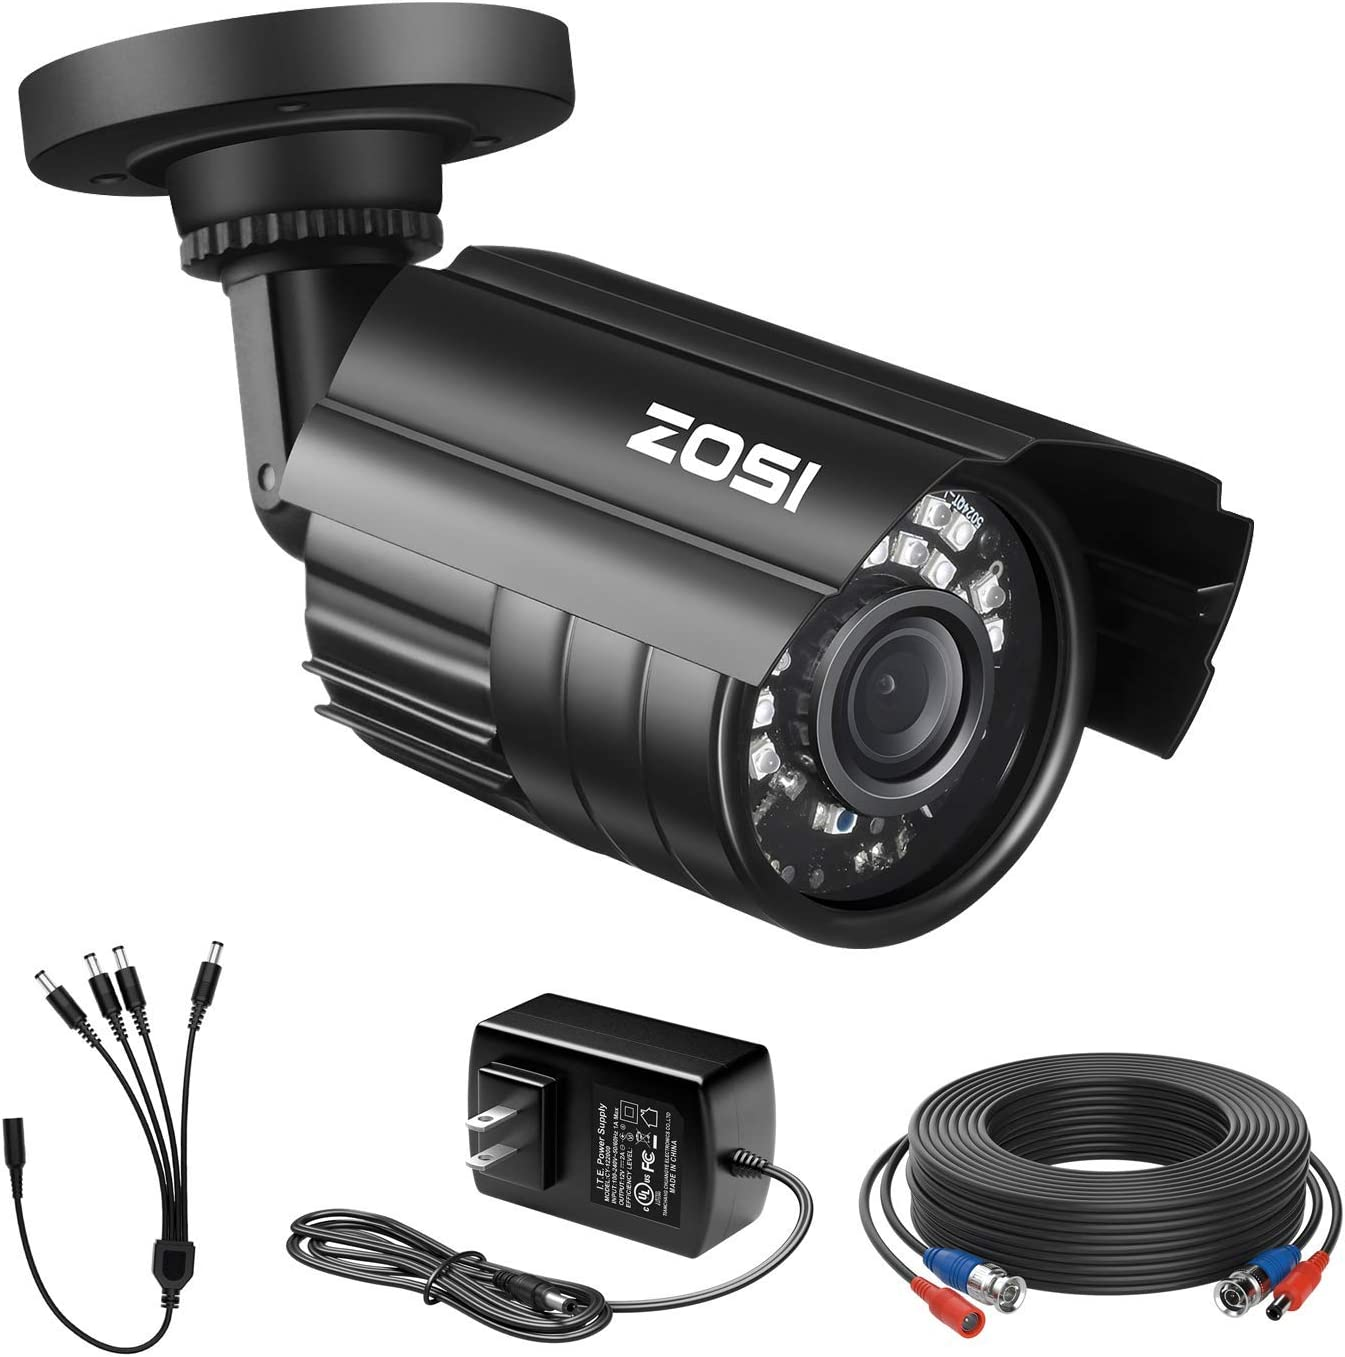 ZOSI 1080P 4-in-1 Security Bullet Camera with CCTV BNC Cable, 12V 2A Power Supply & 1 to 4 Power Splitter Cable, Support TVI CVI AHD CVBS Home Office Outdoor Security System